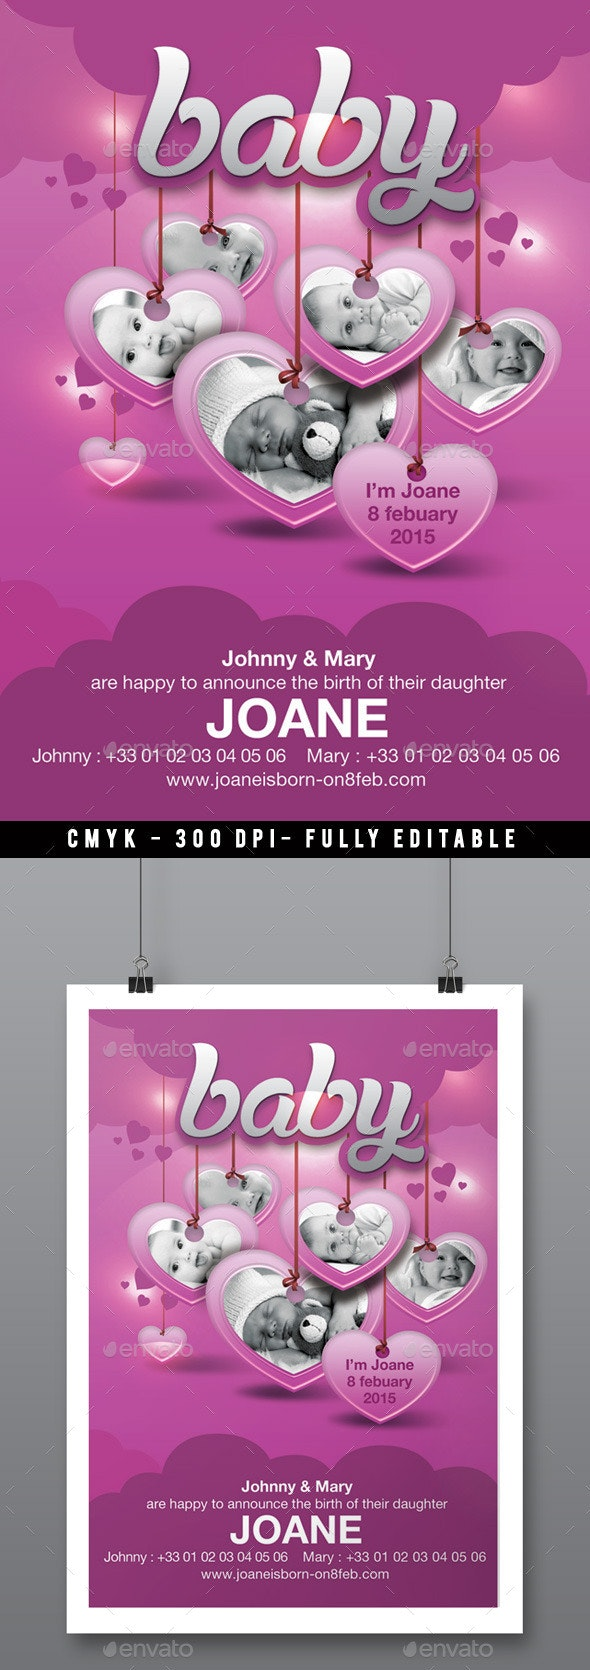 Baby Birth Announcement Flyer - Birthday Greeting Cards